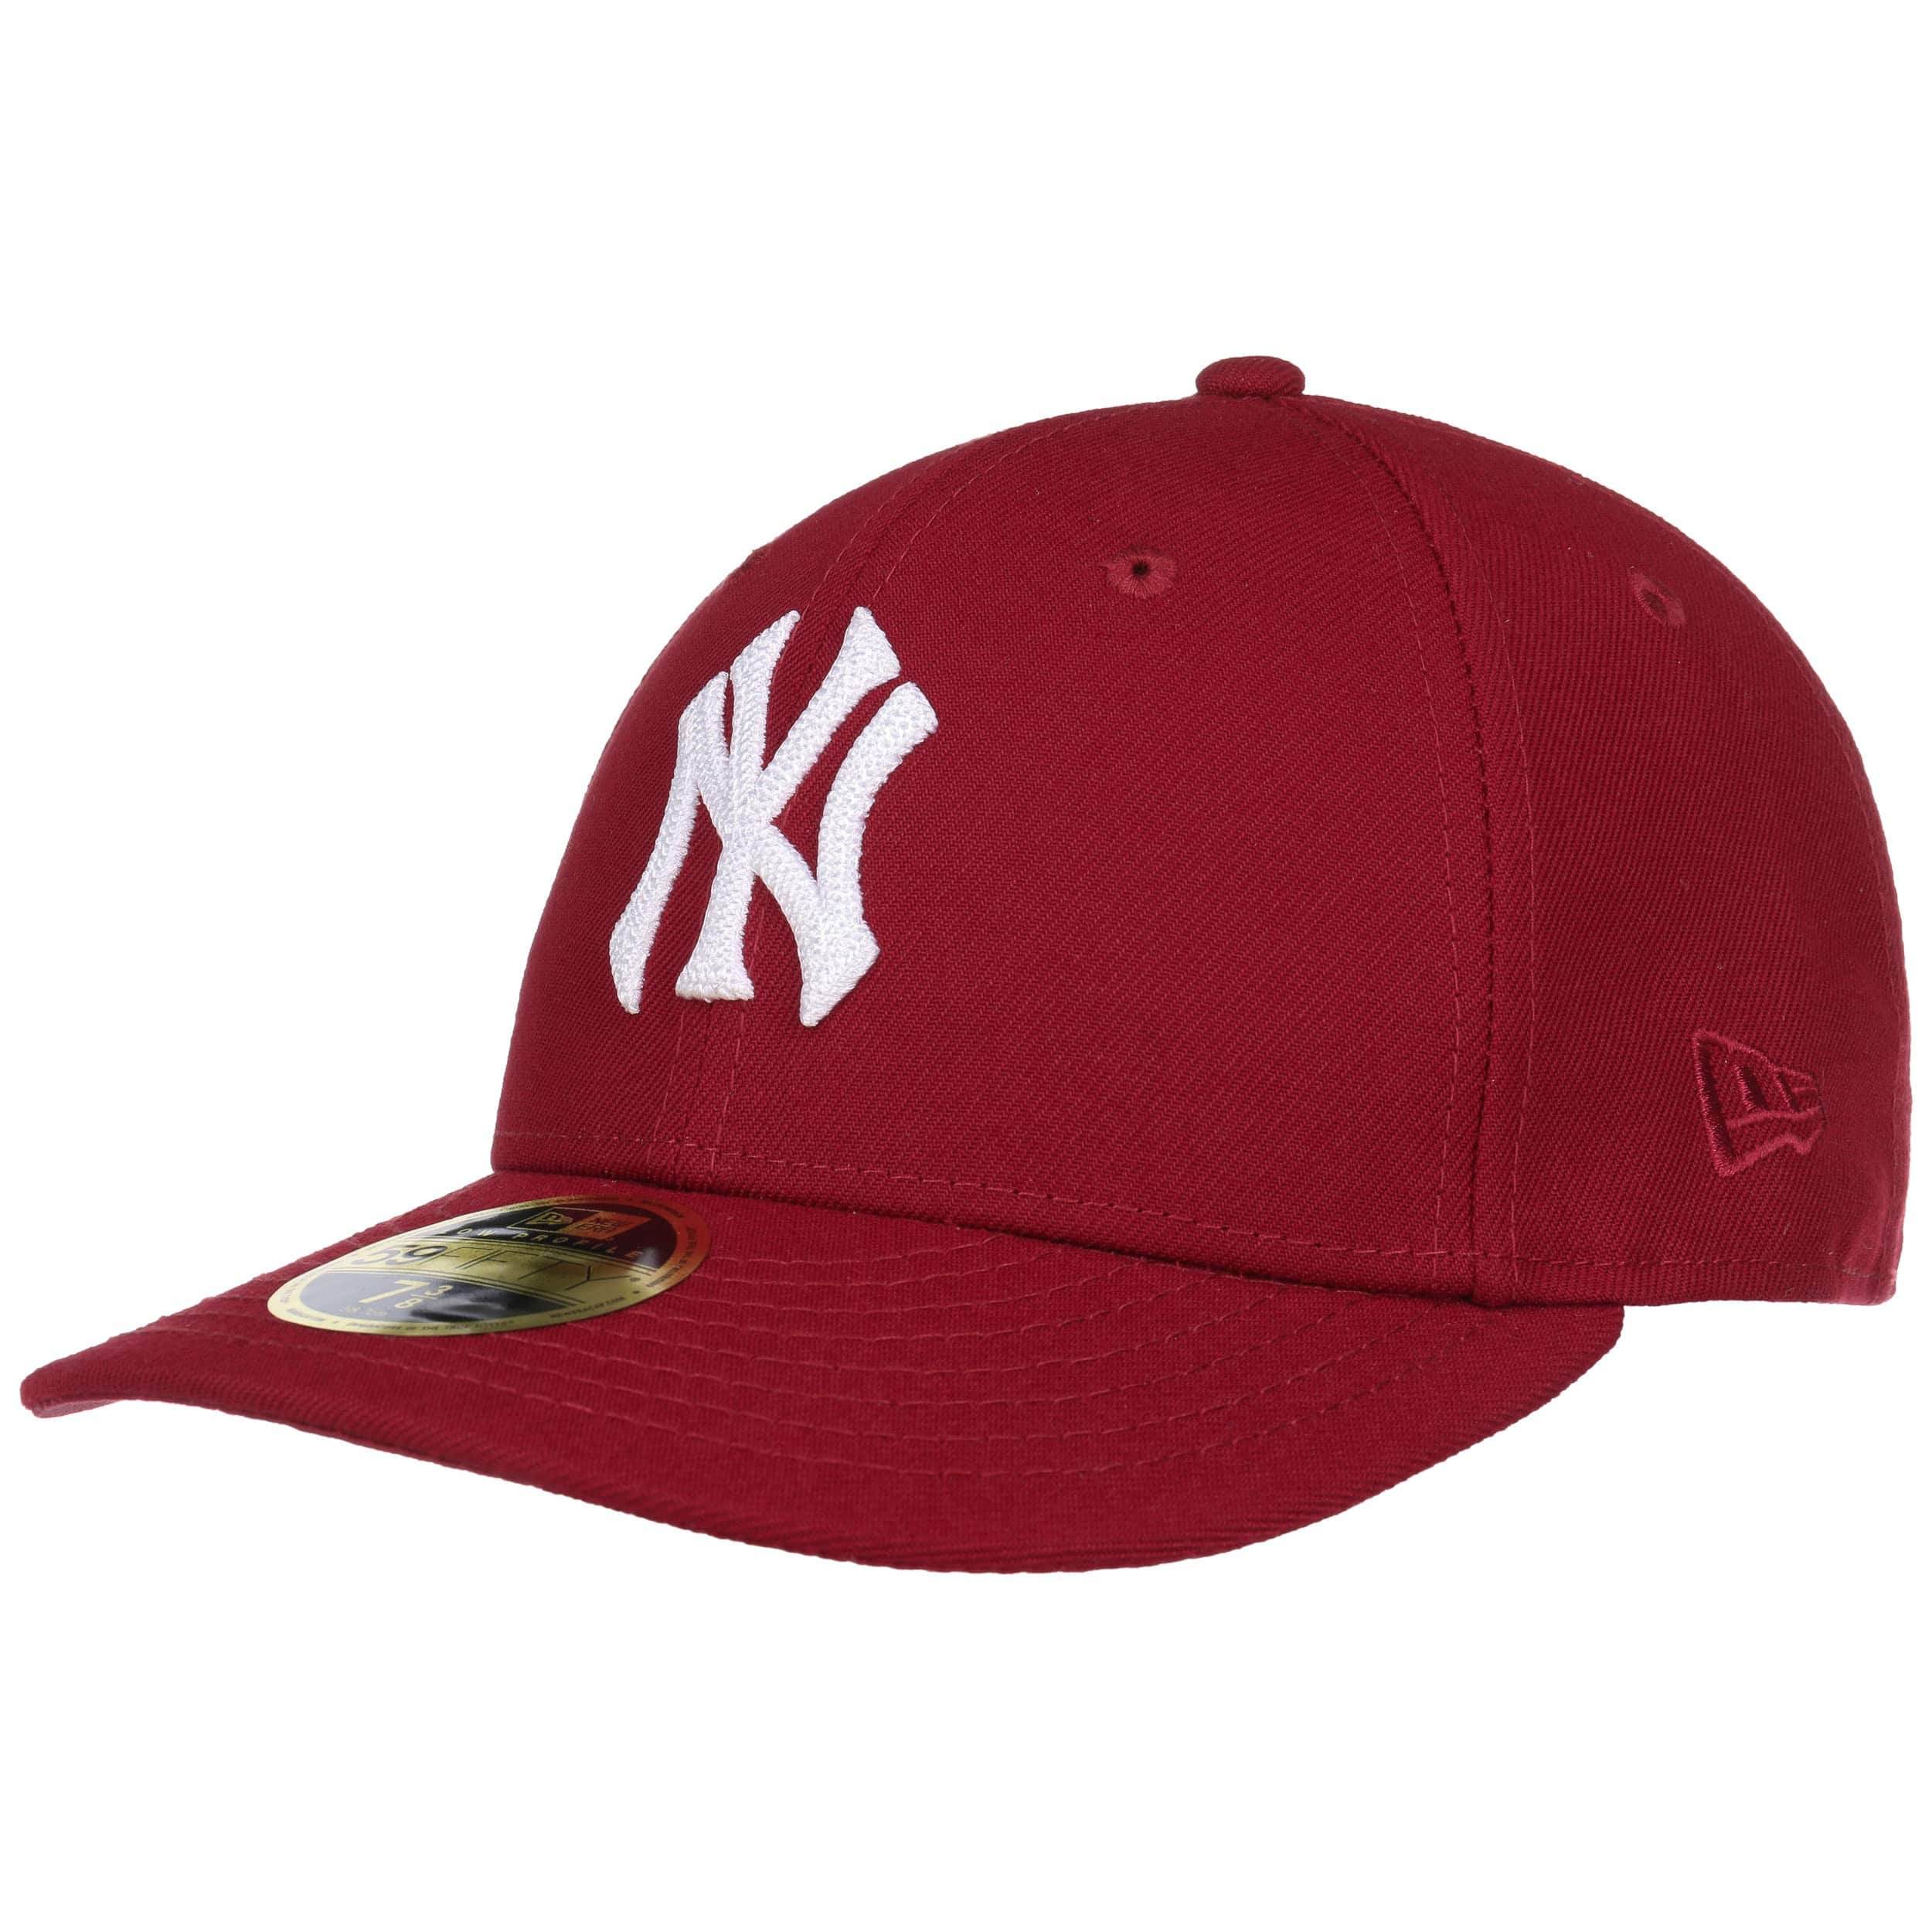 low priced 7c997 c34ac ... greece 59fifty low profile yankees cap by new era bordeaux 6 5ccf3 967f6